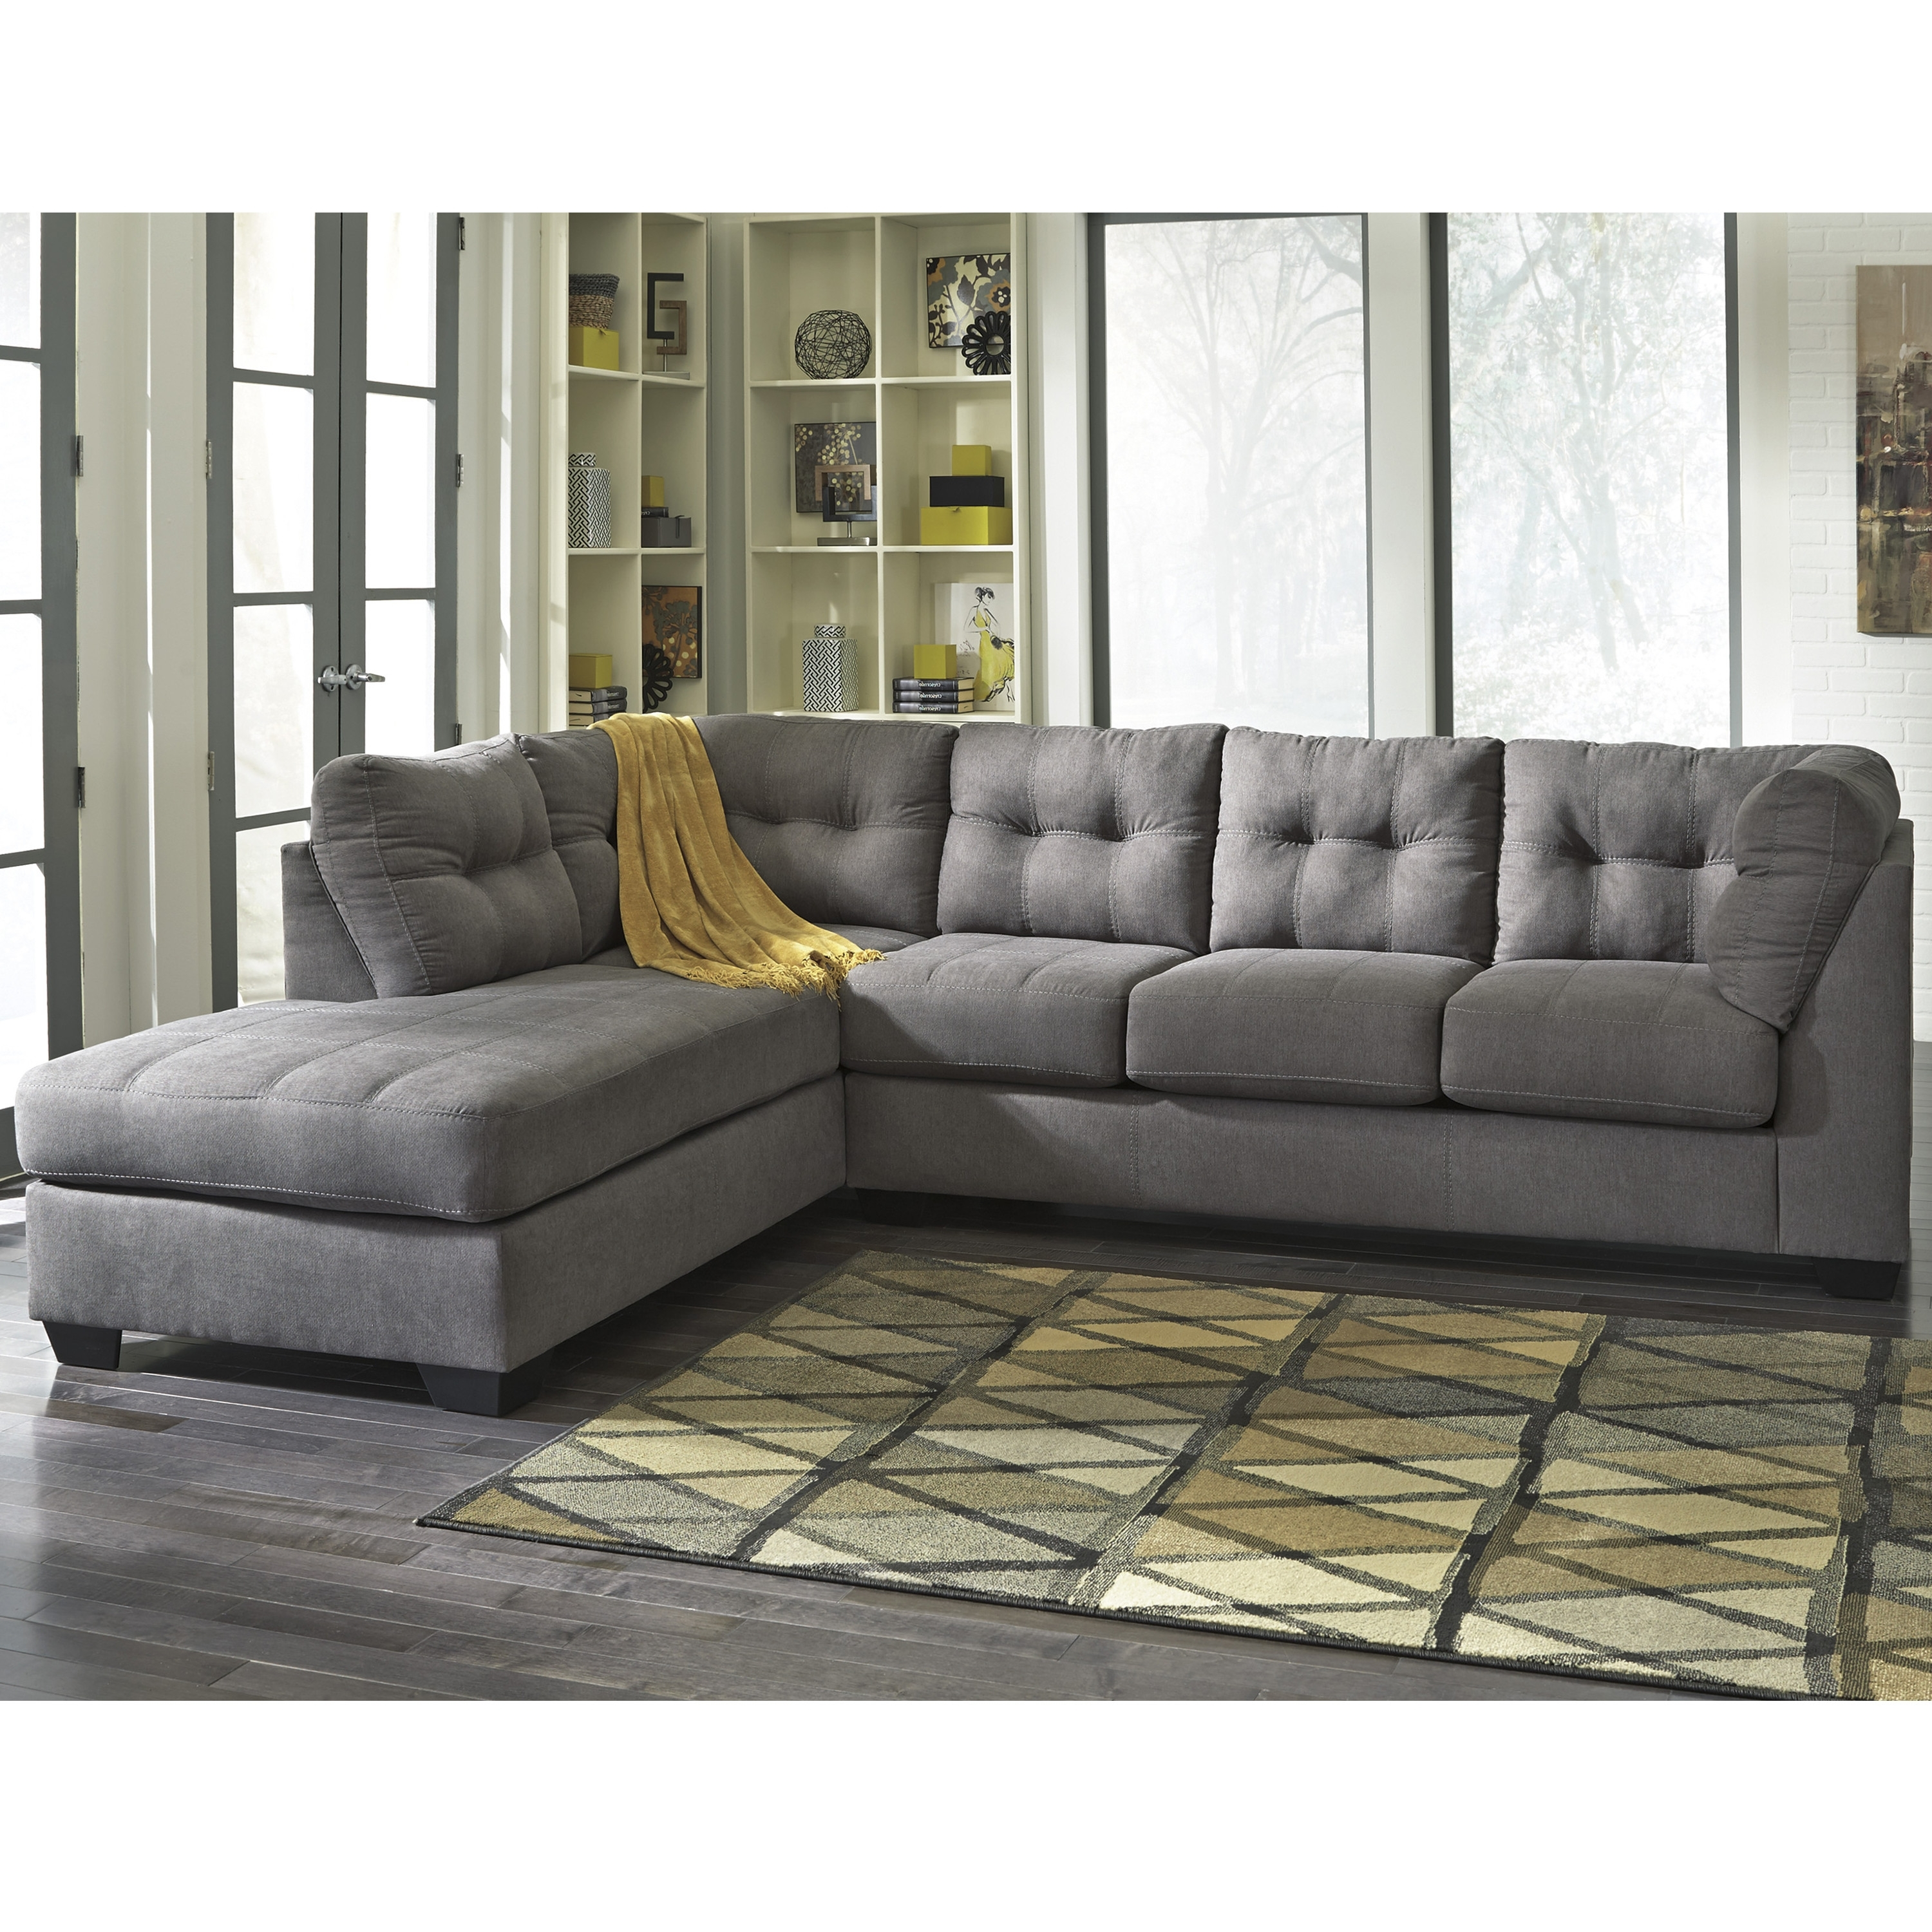 Furniture: Cool Cheap Sectional For Elegant Living Room Design With Regard To Lucy Dark Grey 2 Piece Sectionals With Laf Chaise (Image 8 of 25)